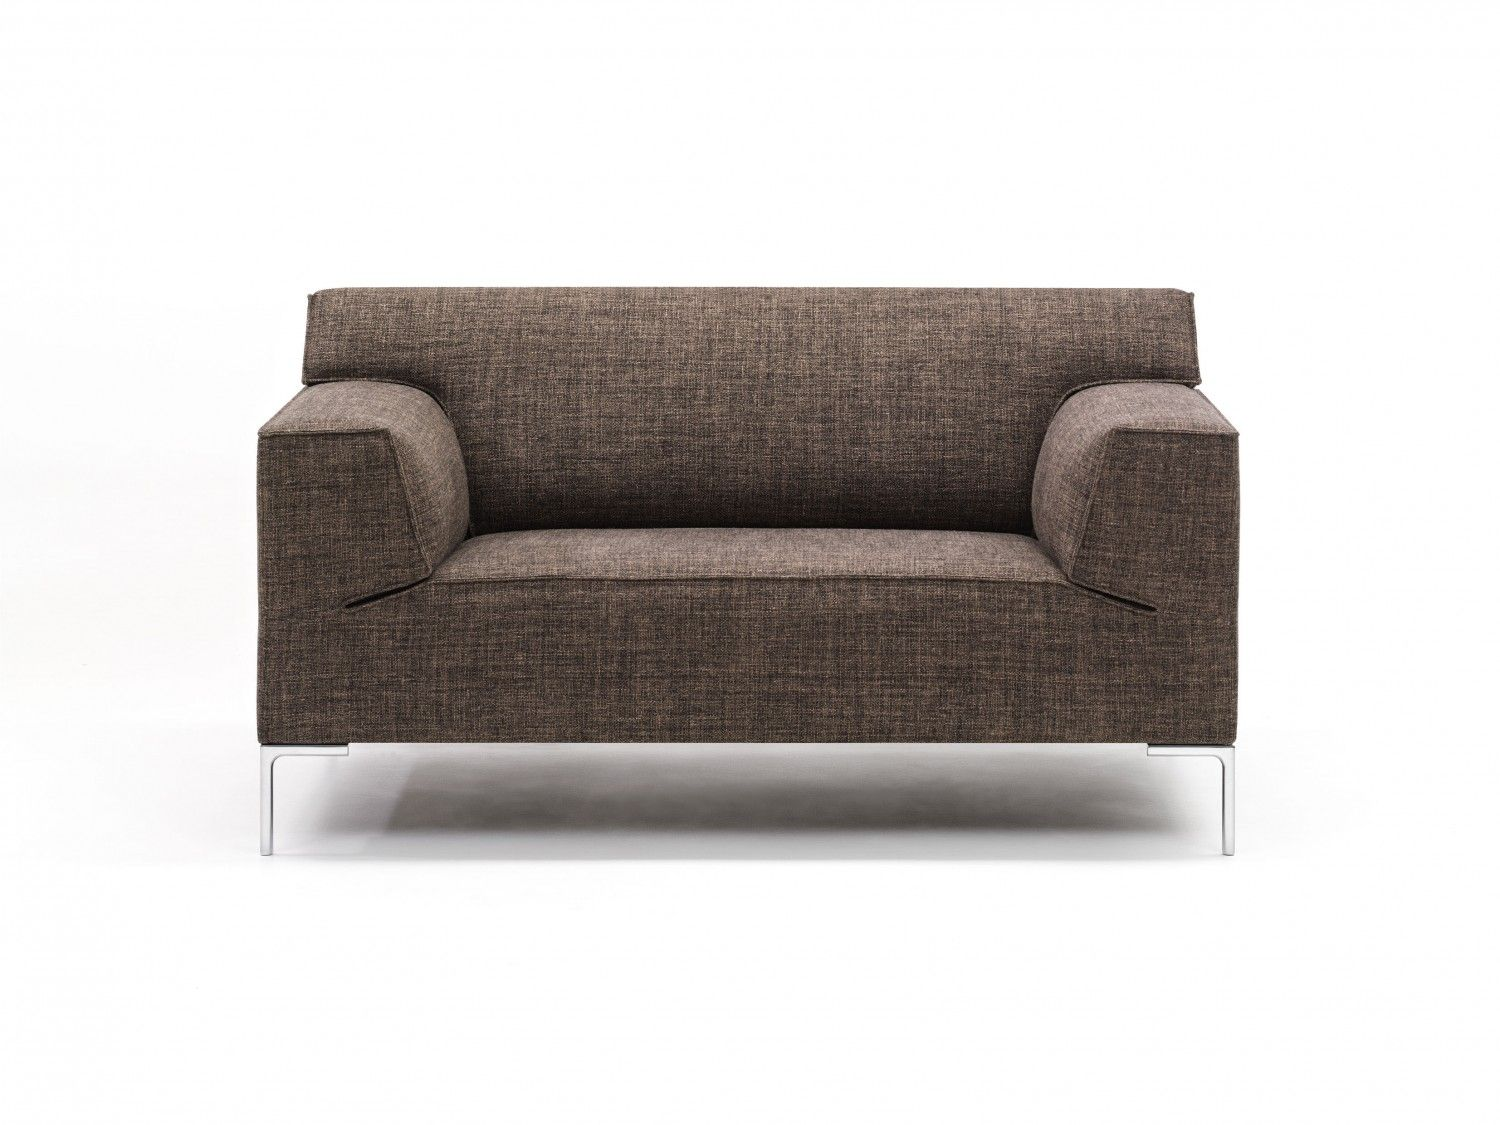 Design On Stock Bloq Bank.Design On Stock Bloq Loveseat